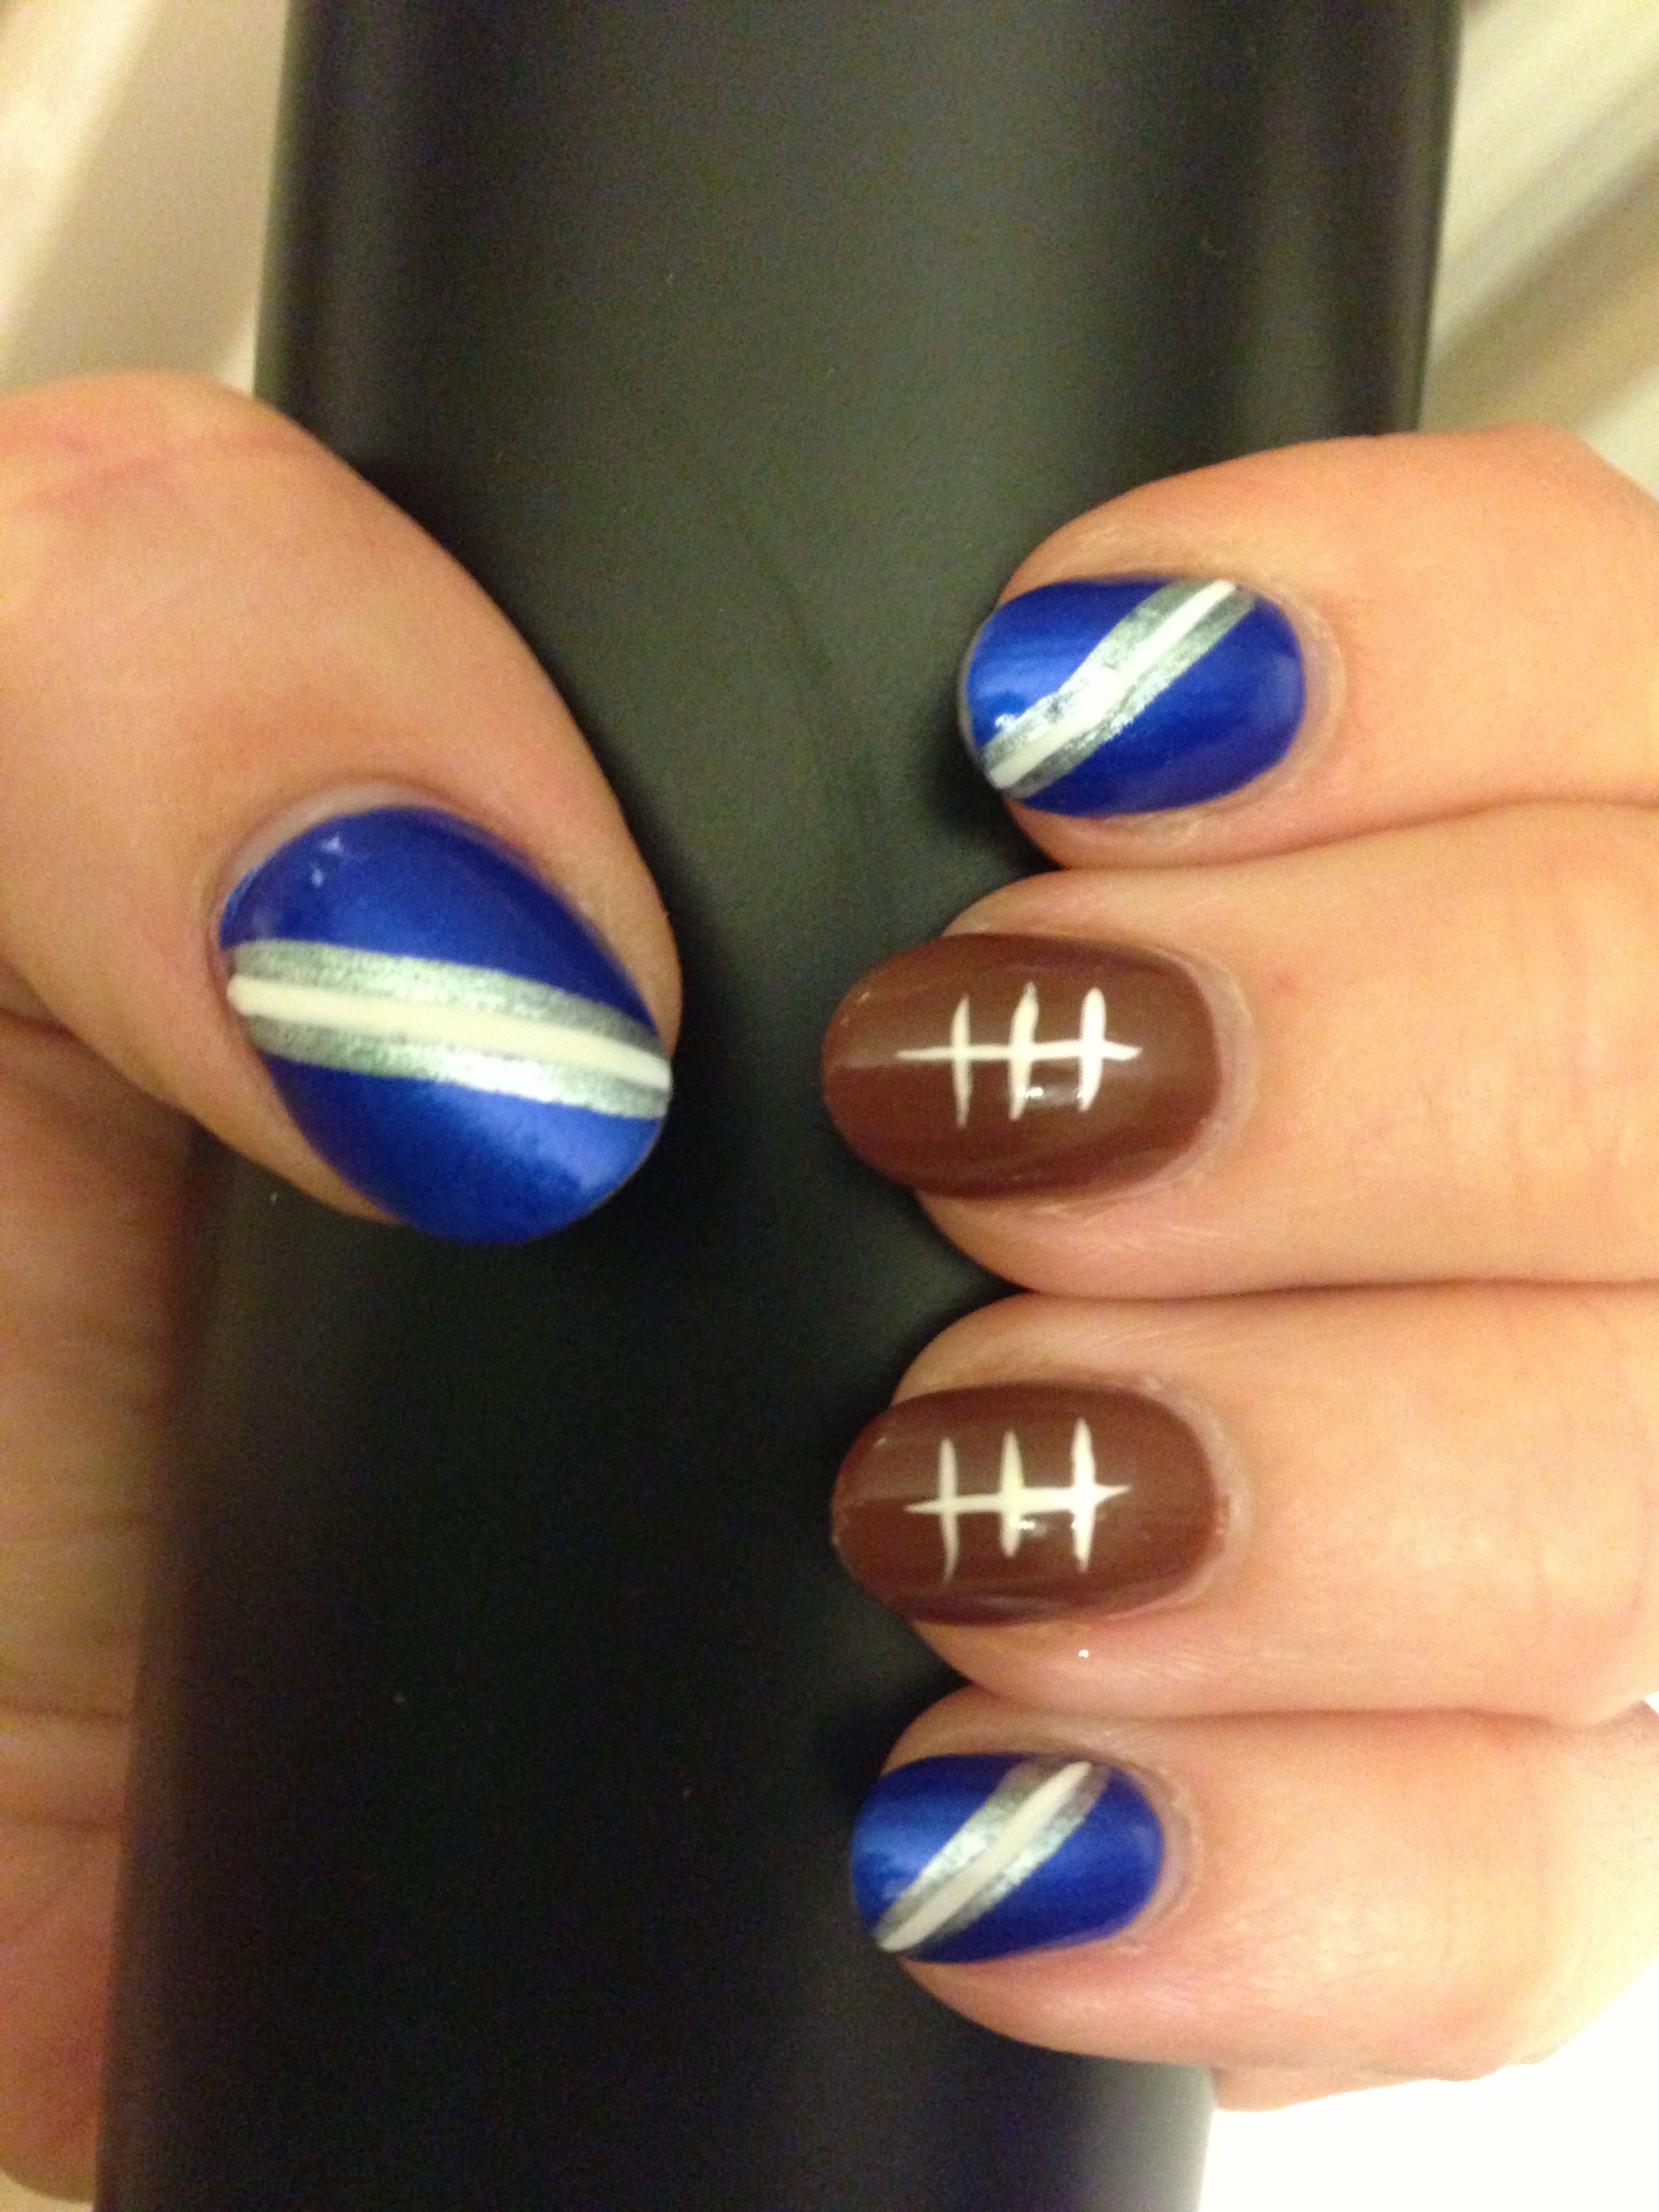 Nail Art - Dallas Cowboys nails Design (or any blue and white ...